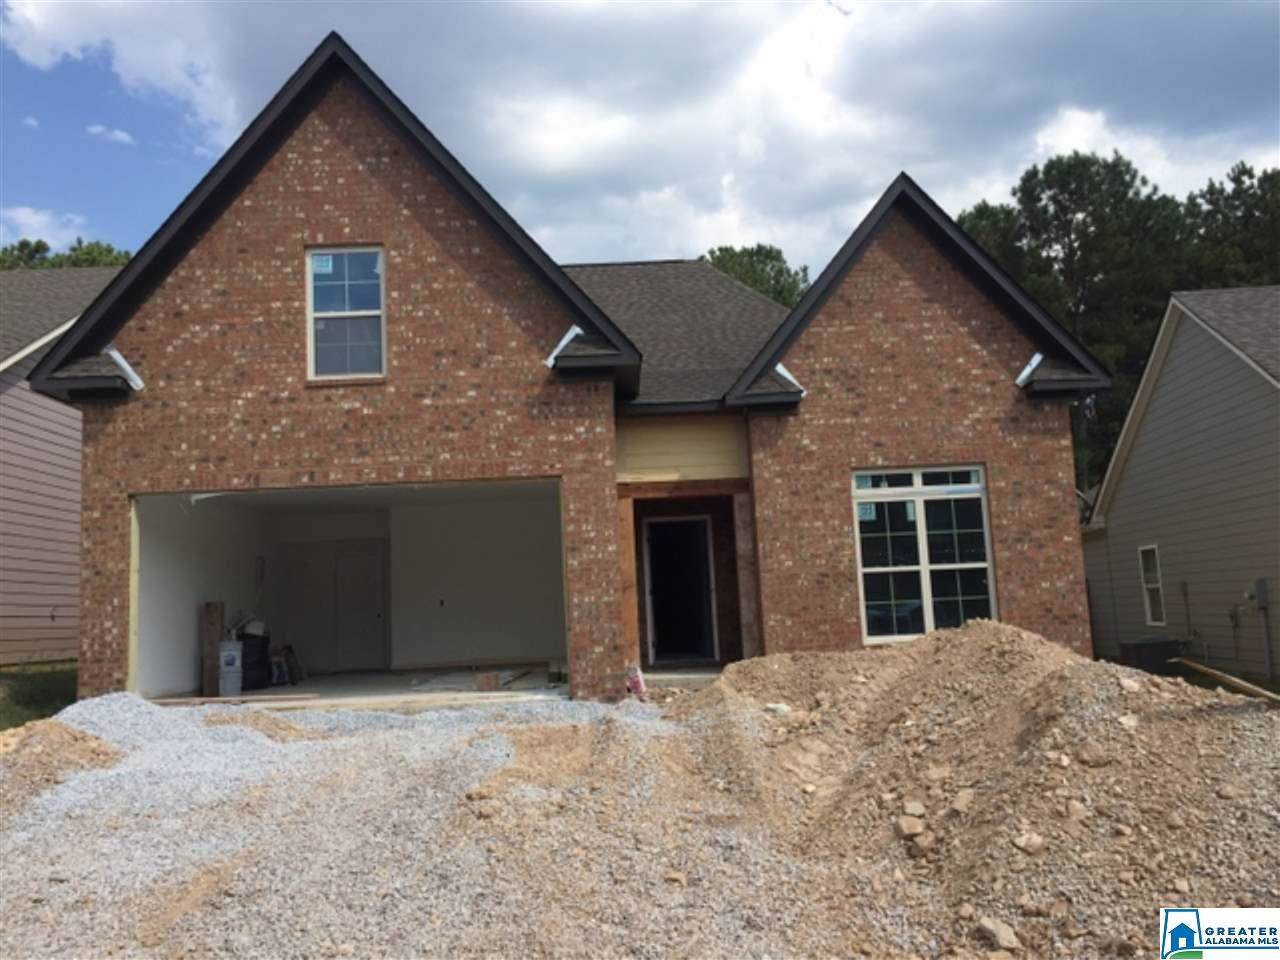 1032 Pine Valley Dr - Photo 1